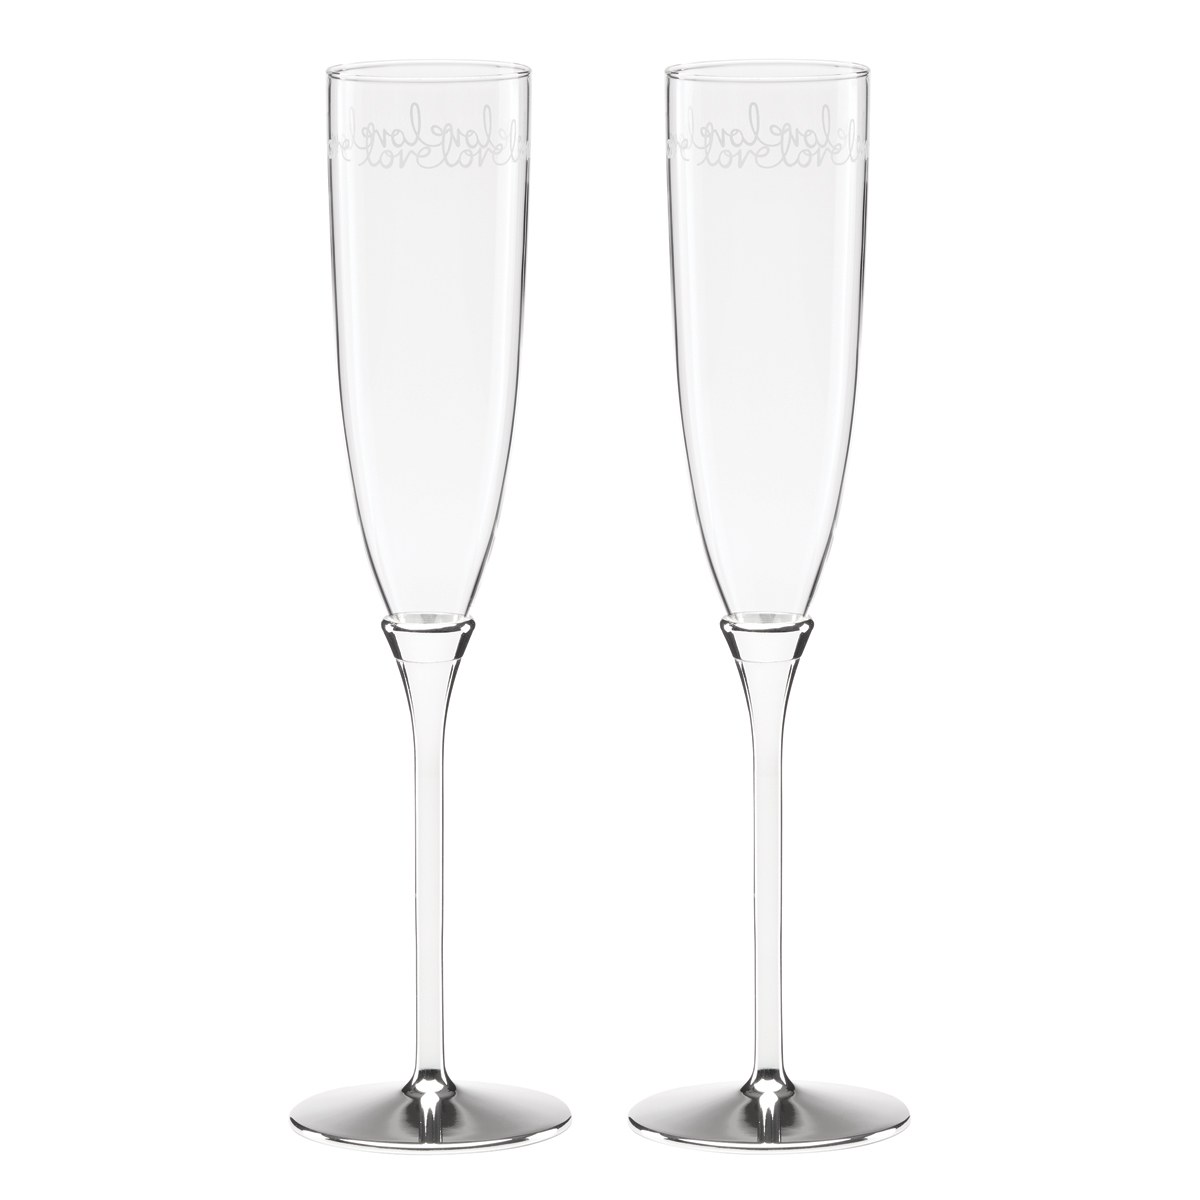 Kate Spade New York, Lenox Key Court Toasting Flutes, Set of 2